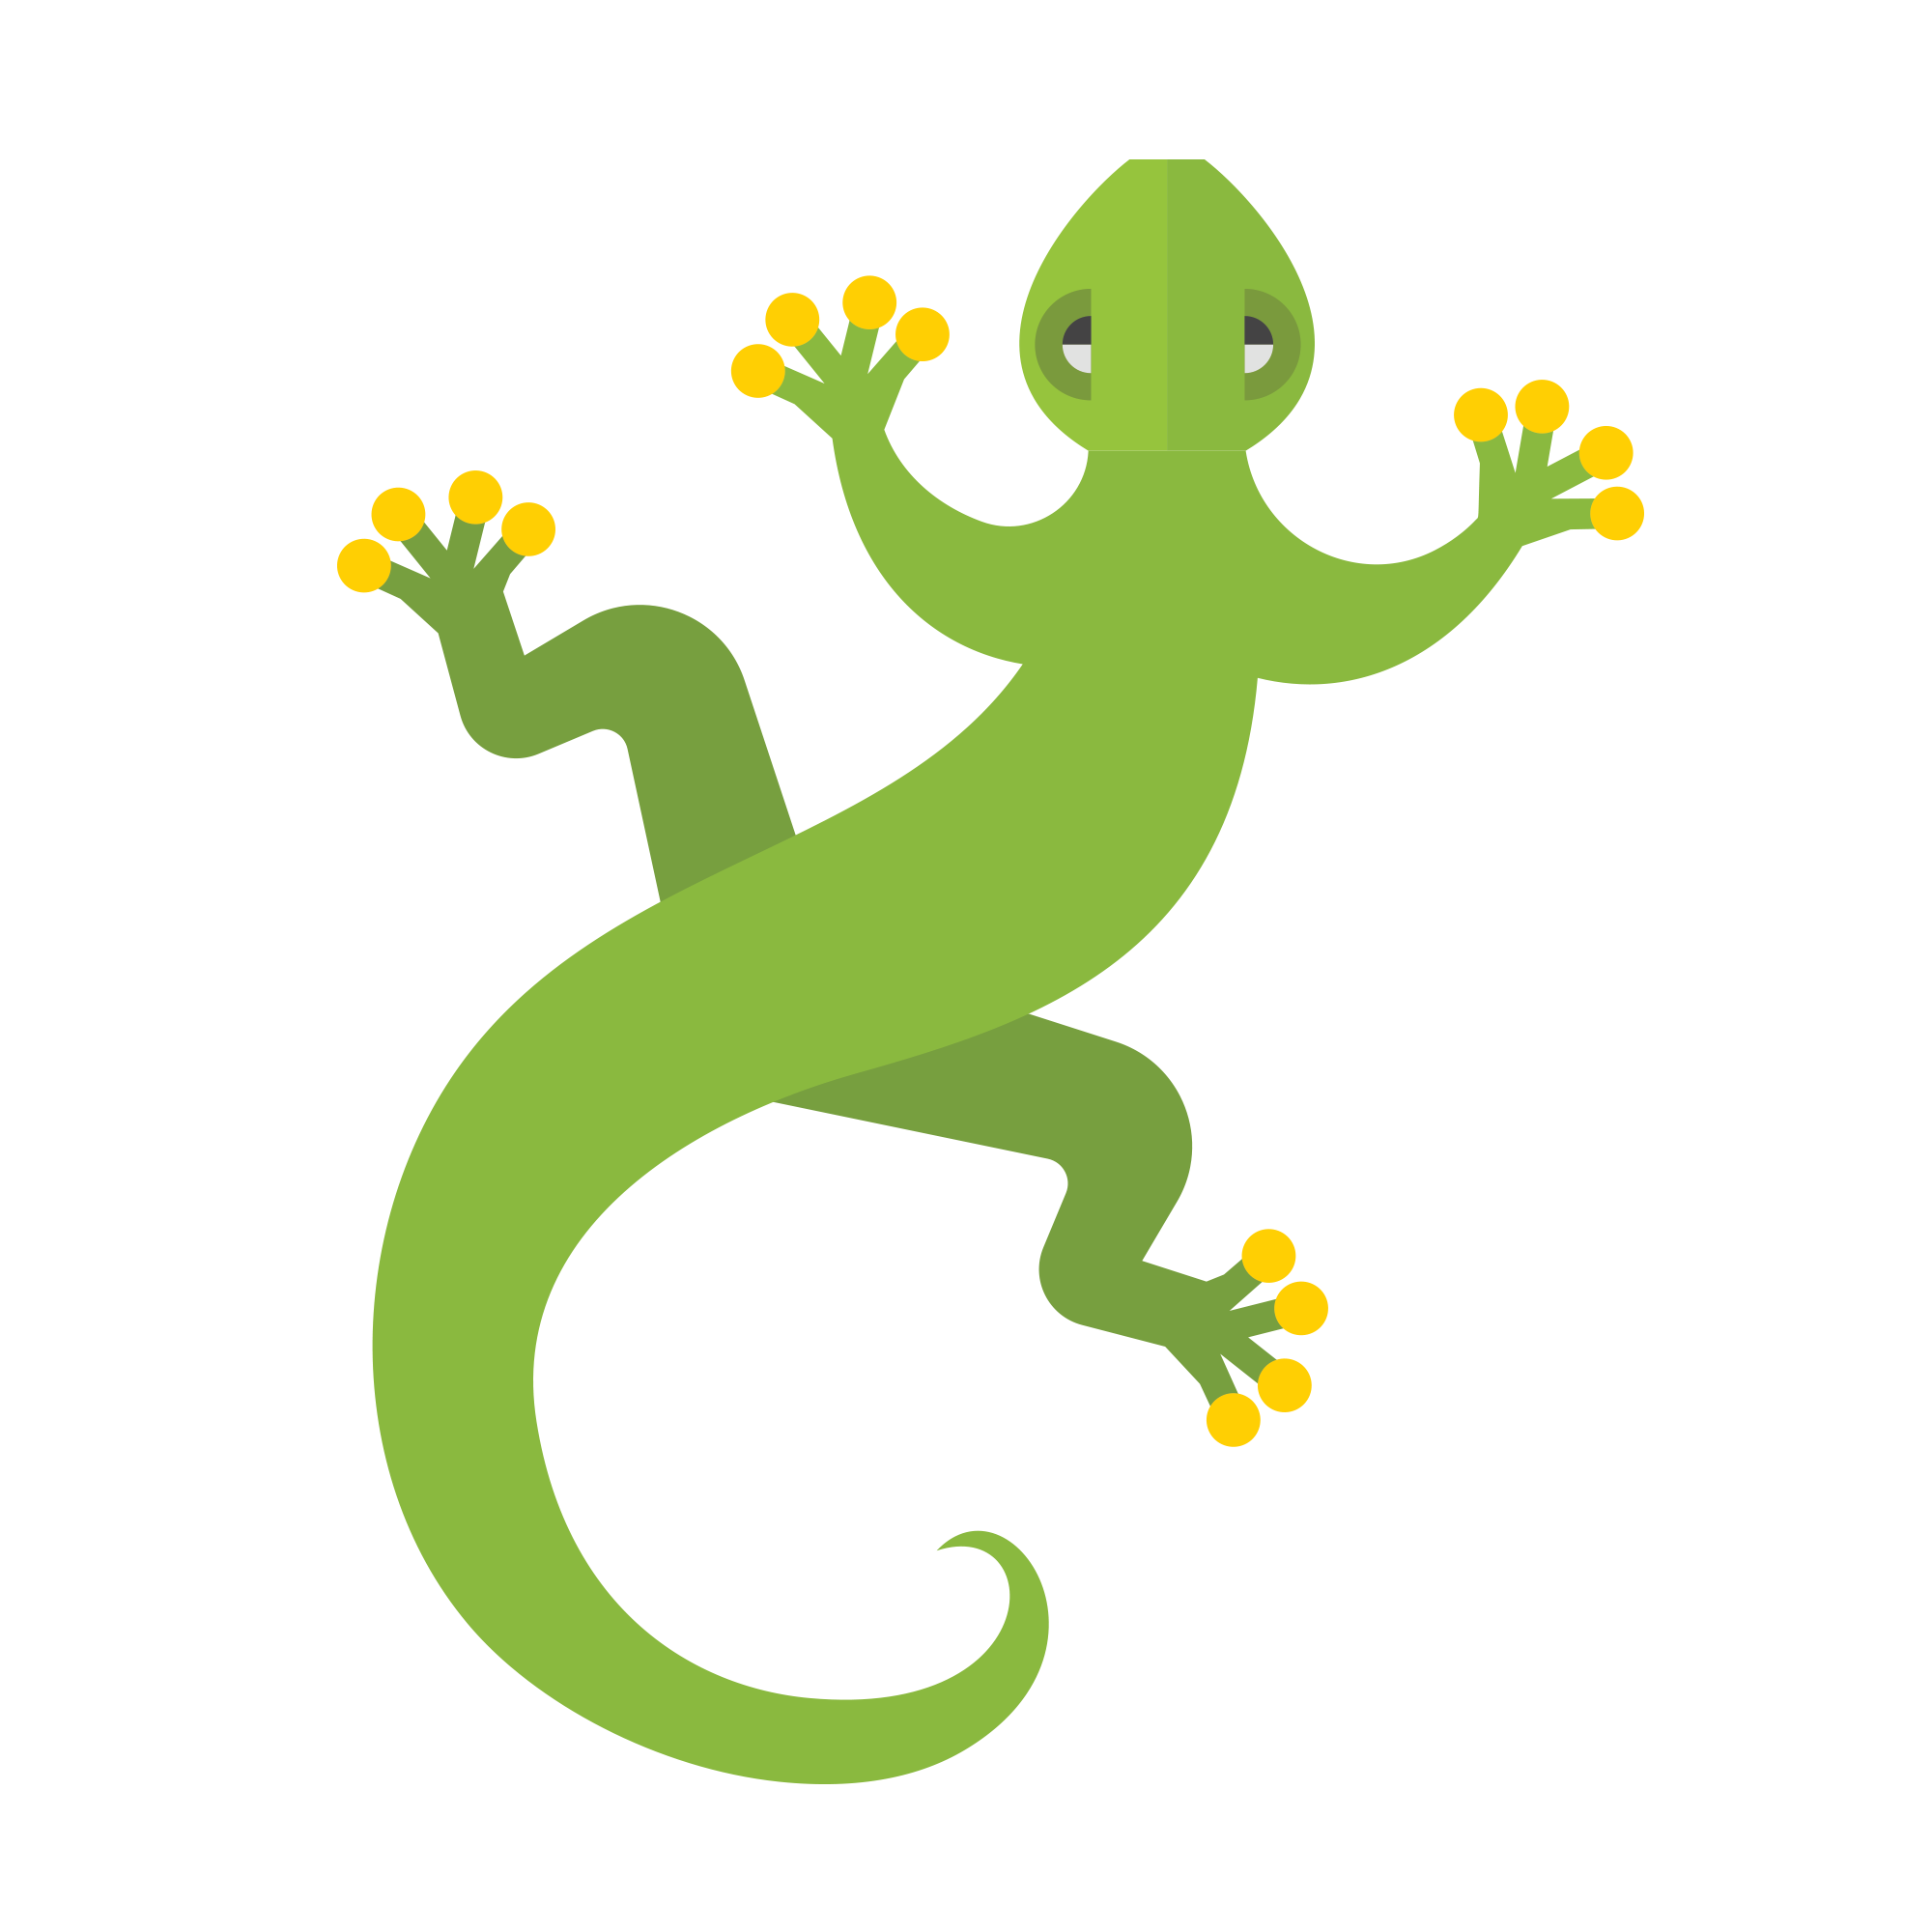 Reptiles planters at bretby. Lizard clipart land animal